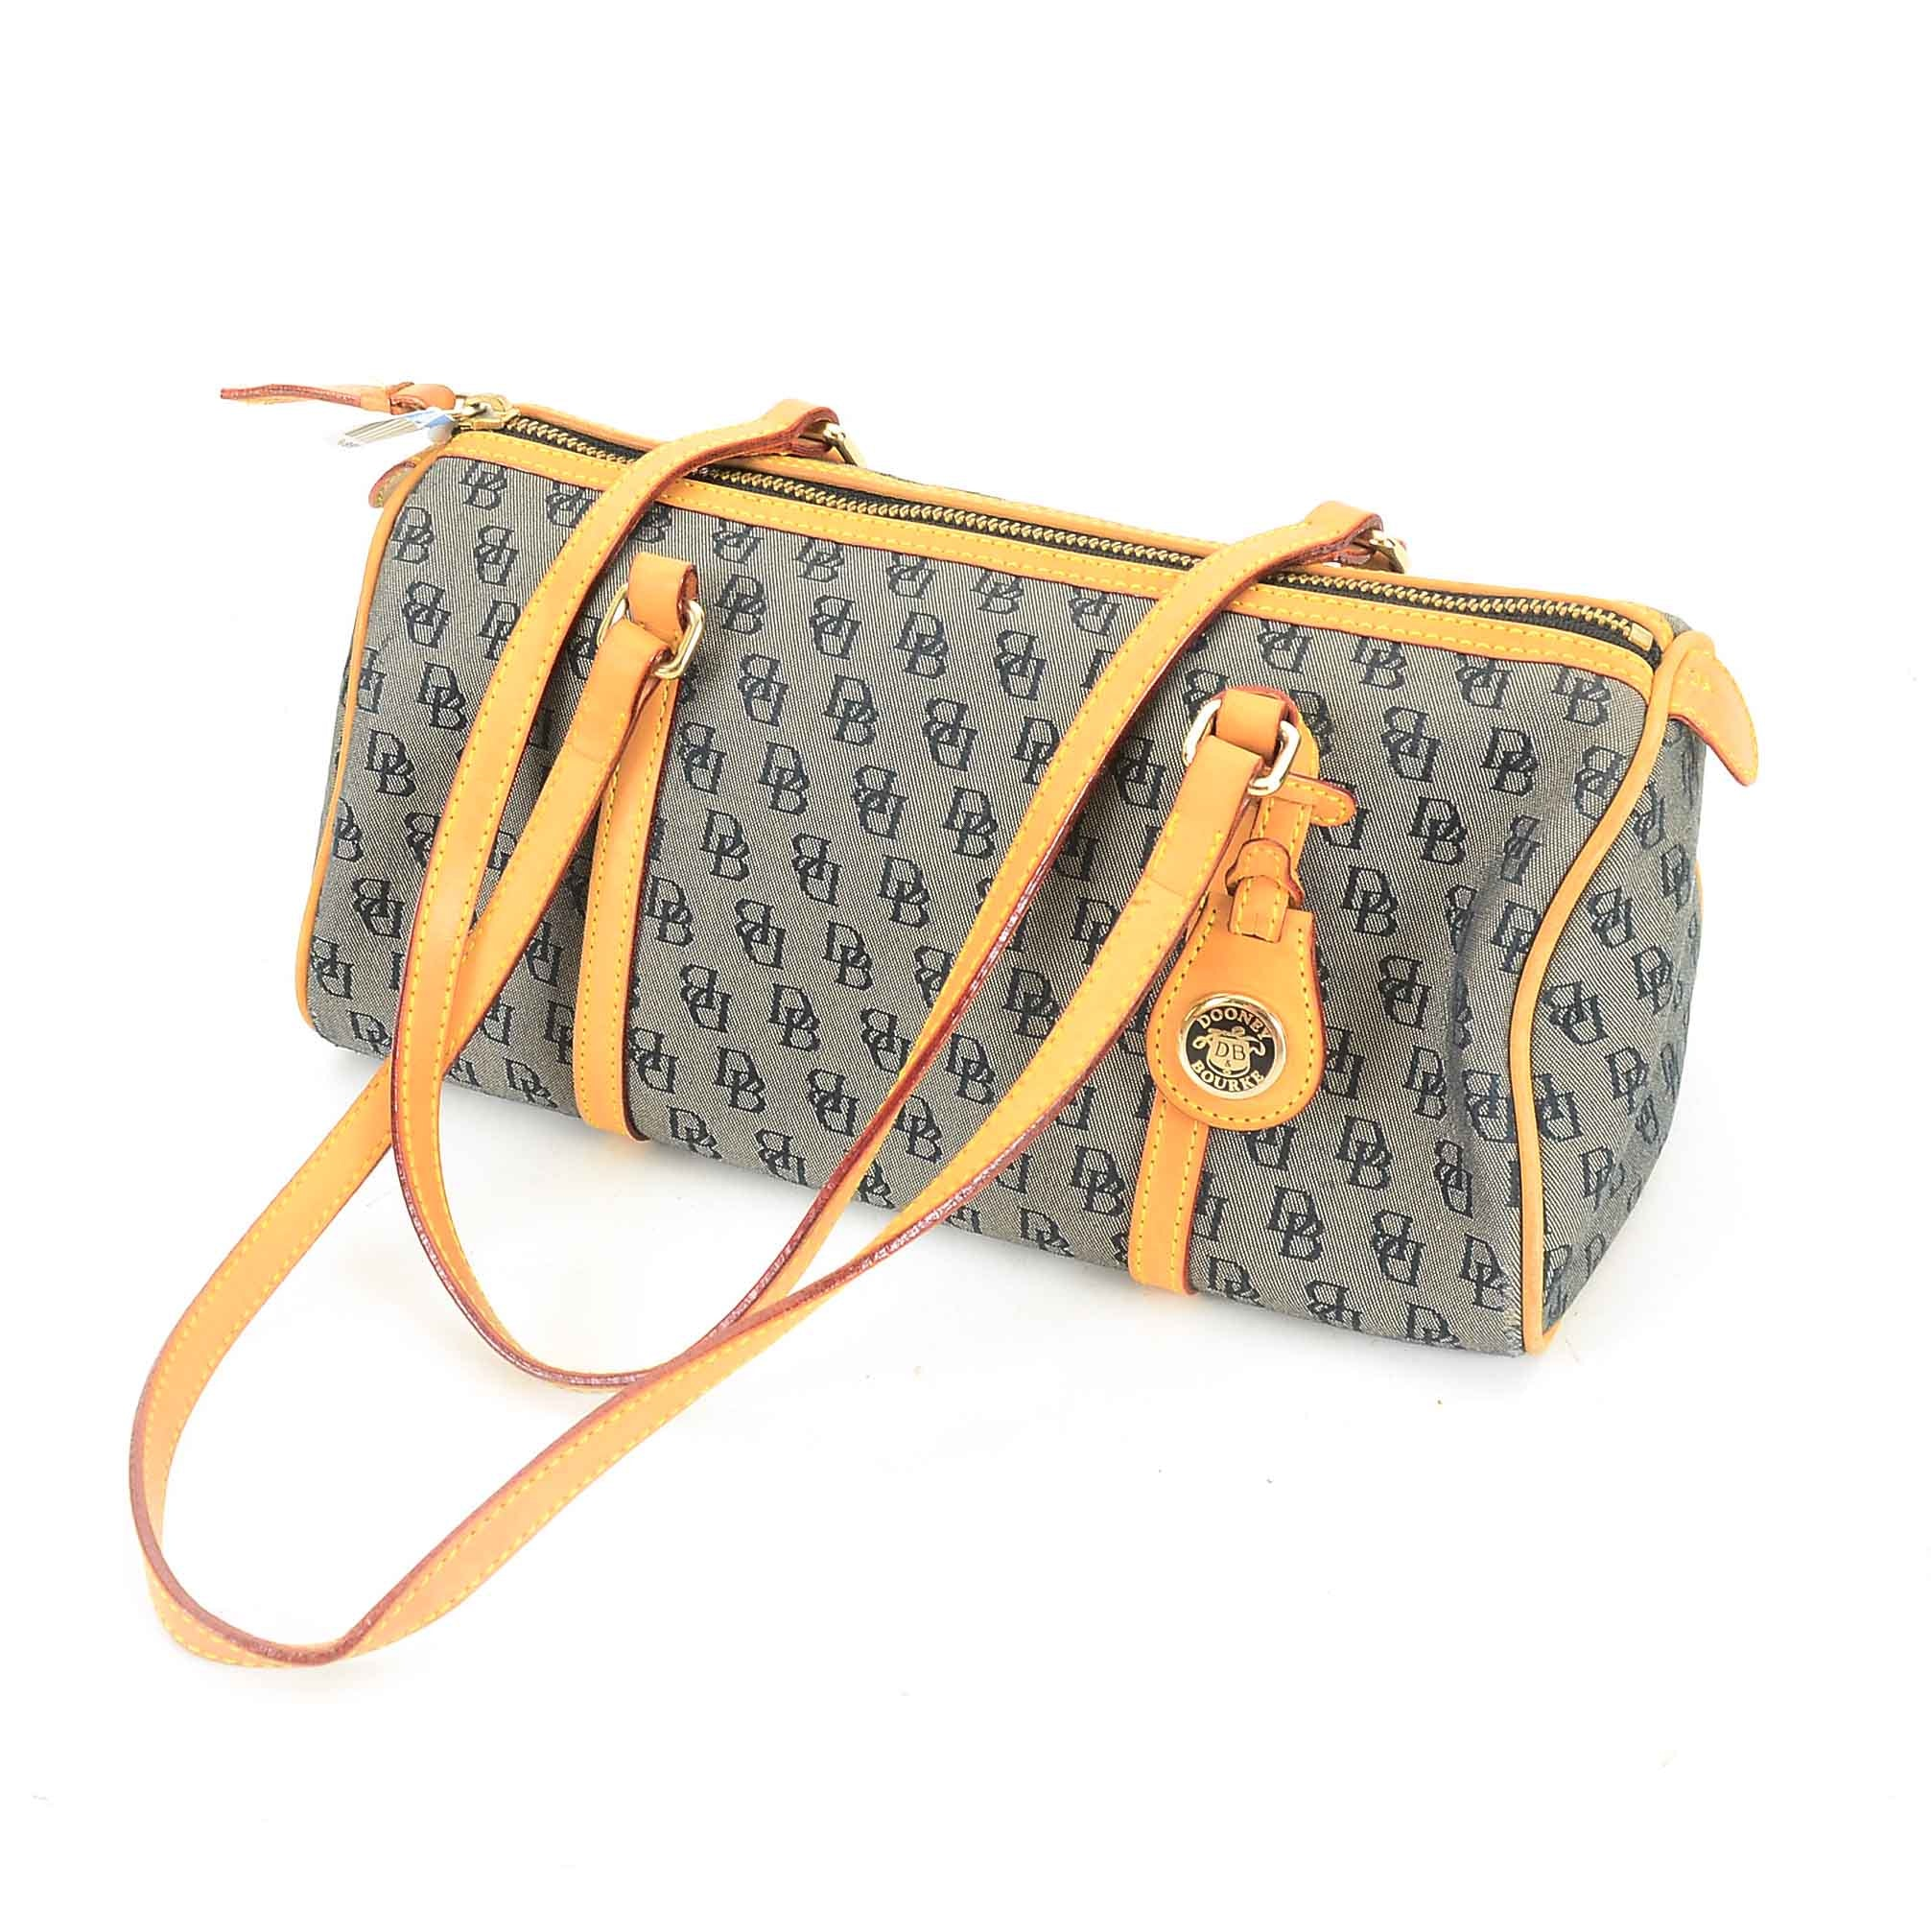 Dooney & Bourke Monogram Canvas and Leather Barrel Bag